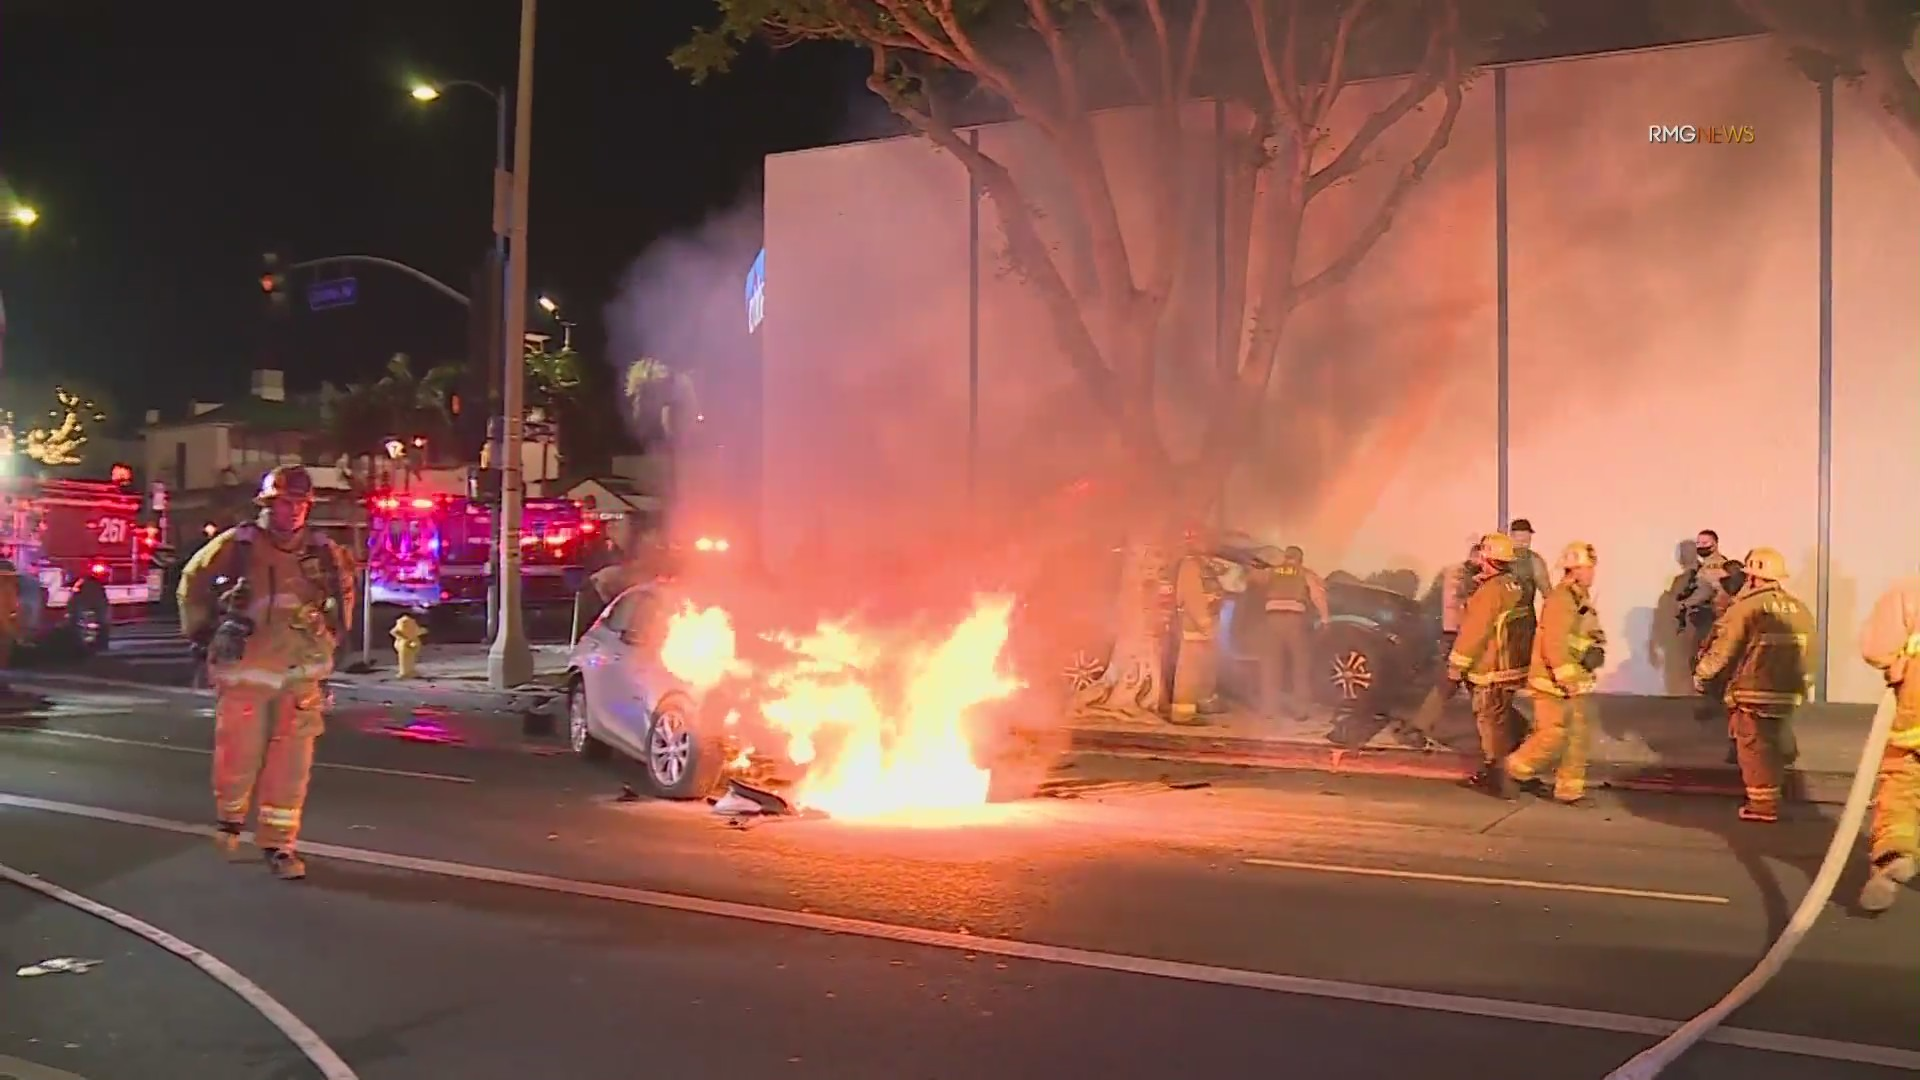 Emergency crews arrive at a fatal crash in Beverly Grove on March 2, 2021. (RMG News)